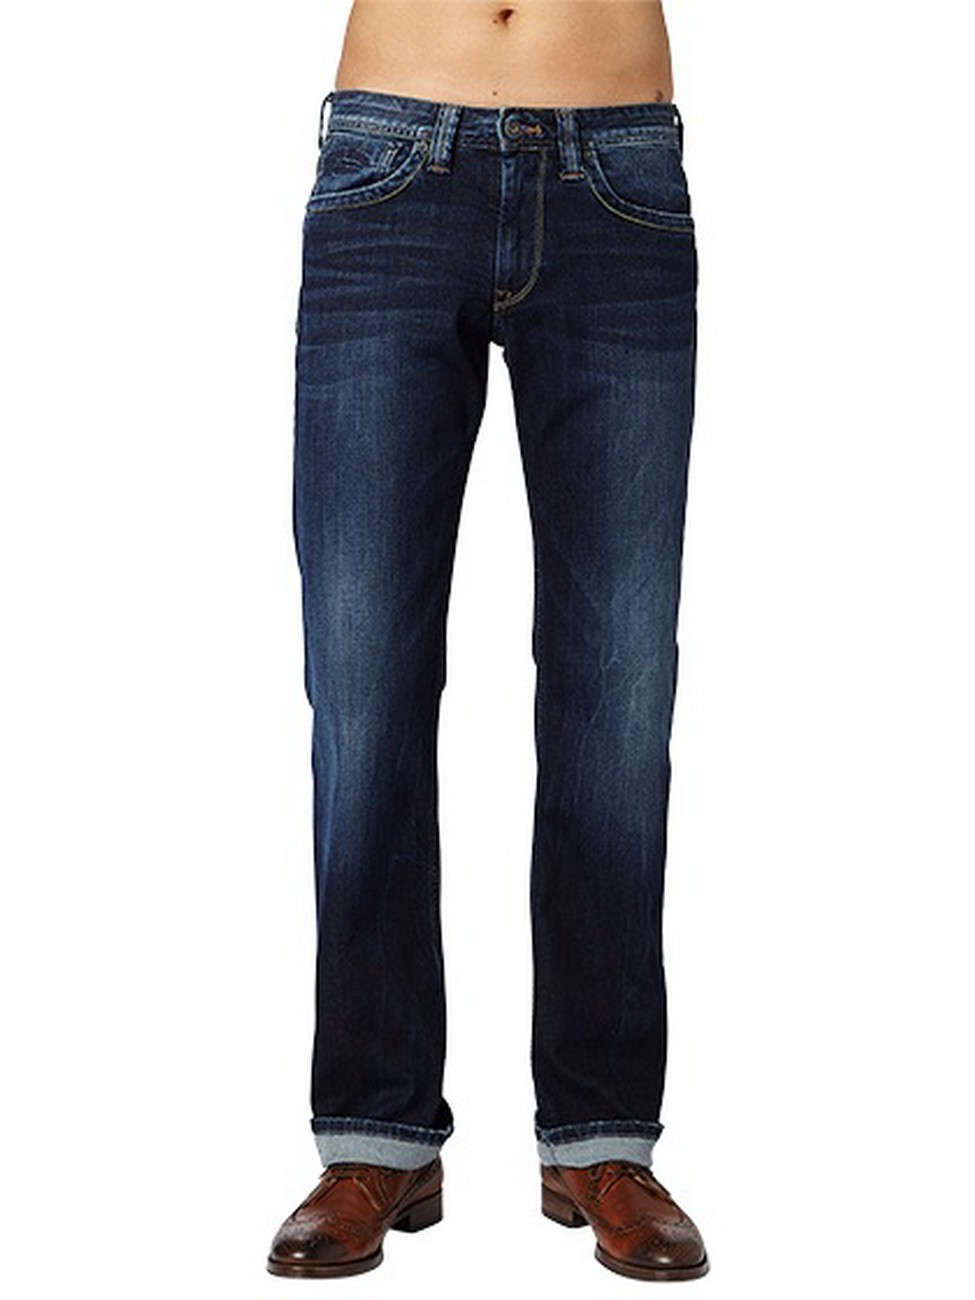 Pepe Jeans Herren Jeans Kingston Zip - Regular Fit - Dark Blue